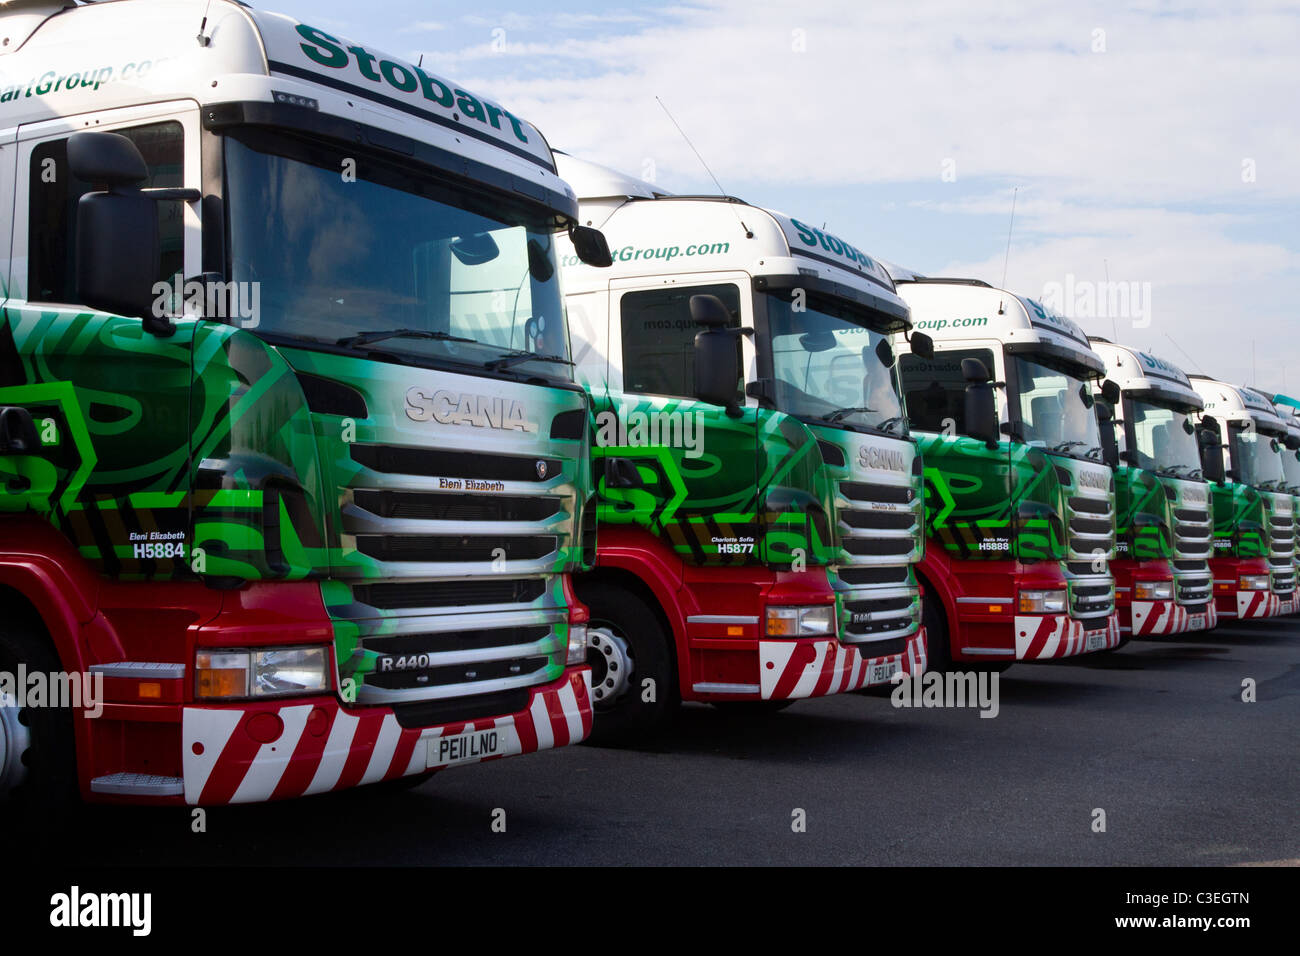 Row of Parked Eddie Stobart trucks trailers & containers at Lorry Halt  Row of Livery AEC Scania 440 haulage vehicles. Stock Photo